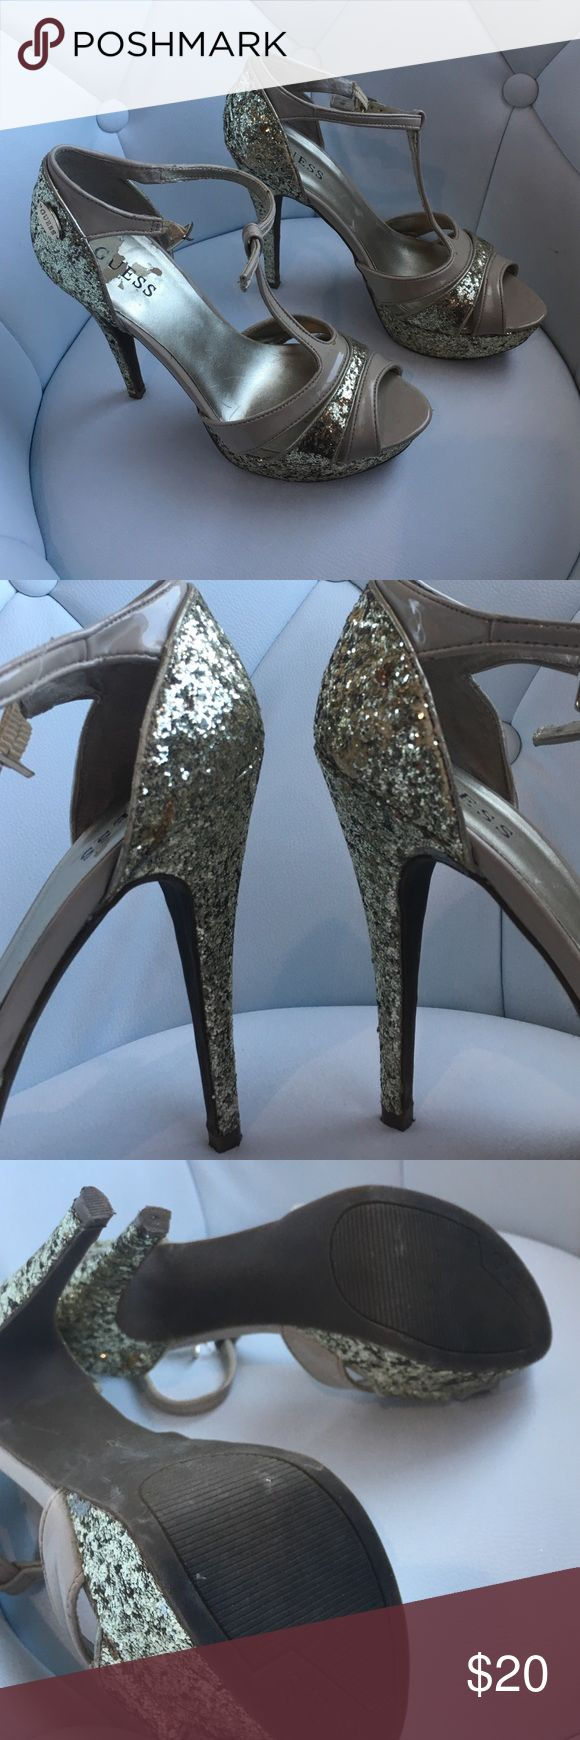 👠Guess gold sparkly shoes Gold sparkly Guess shoes. Only worn once to a wedding. Some sparkles are missing, as shown in photos! Guess Shoes Heels